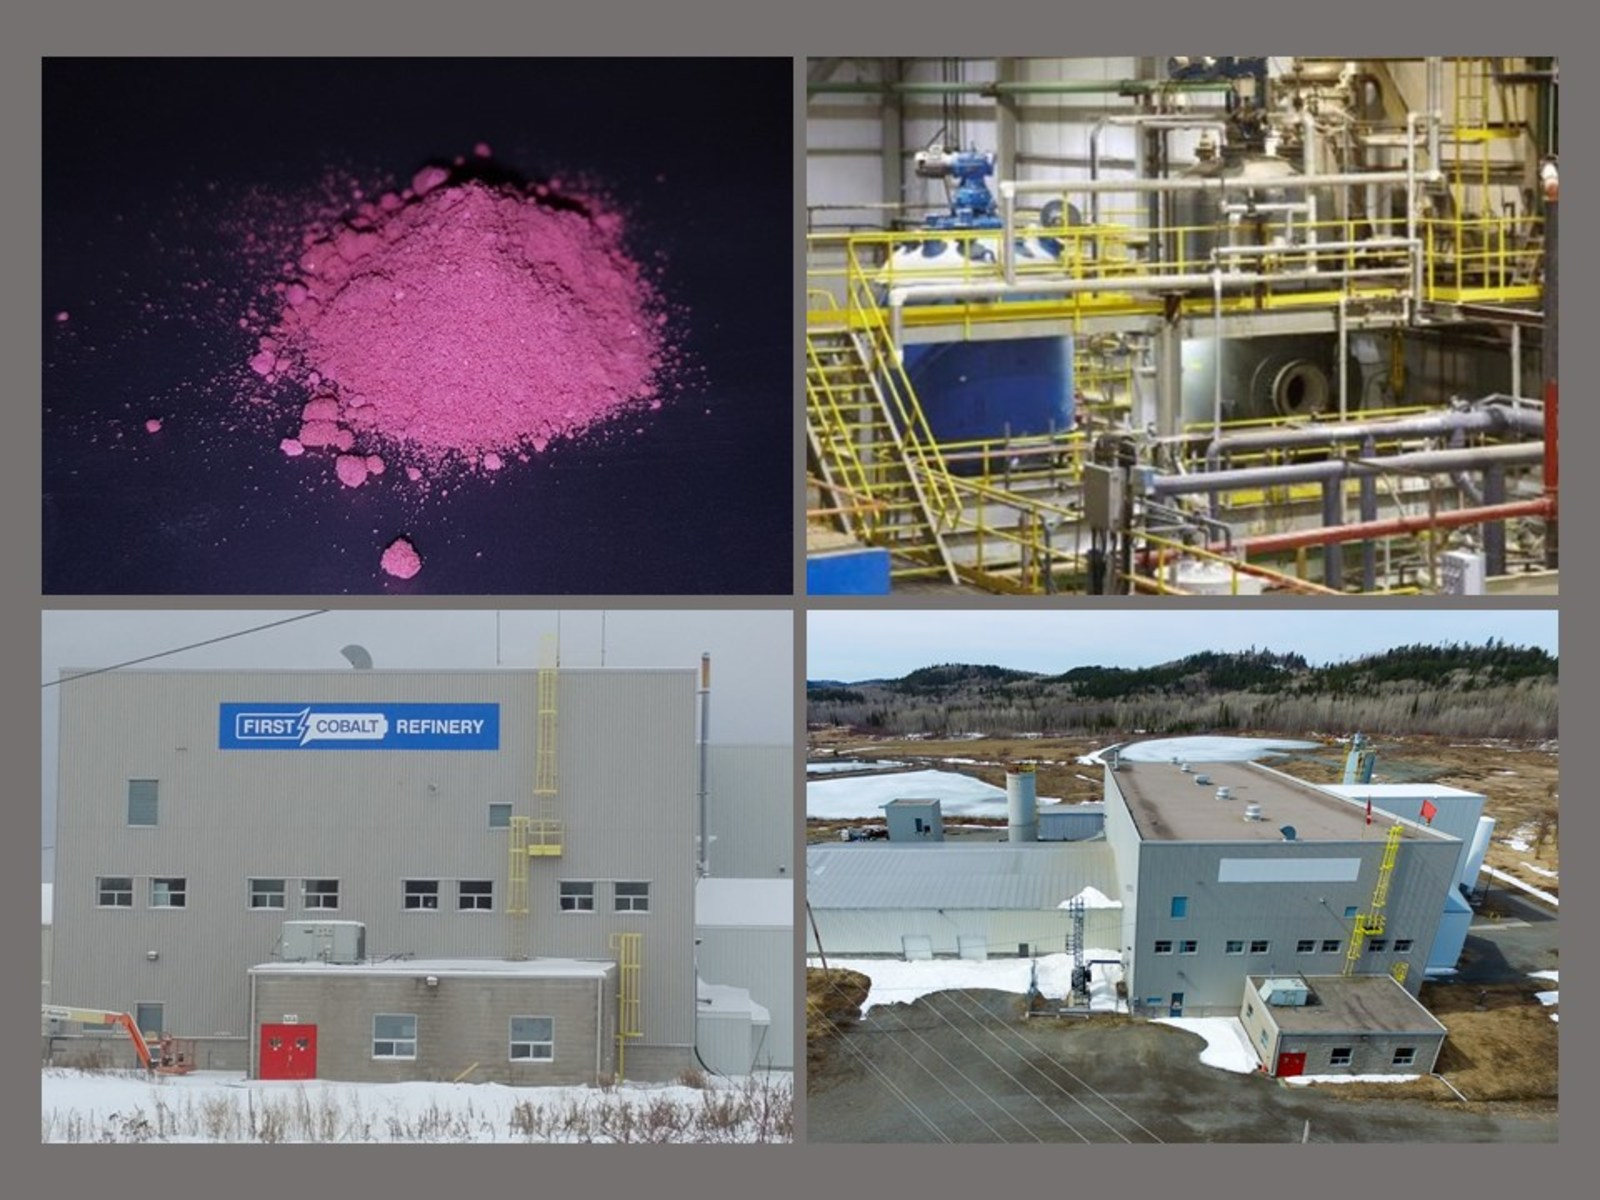 Image 1. First Cobalt Refinery exterior, interior and cobalt sulfate material